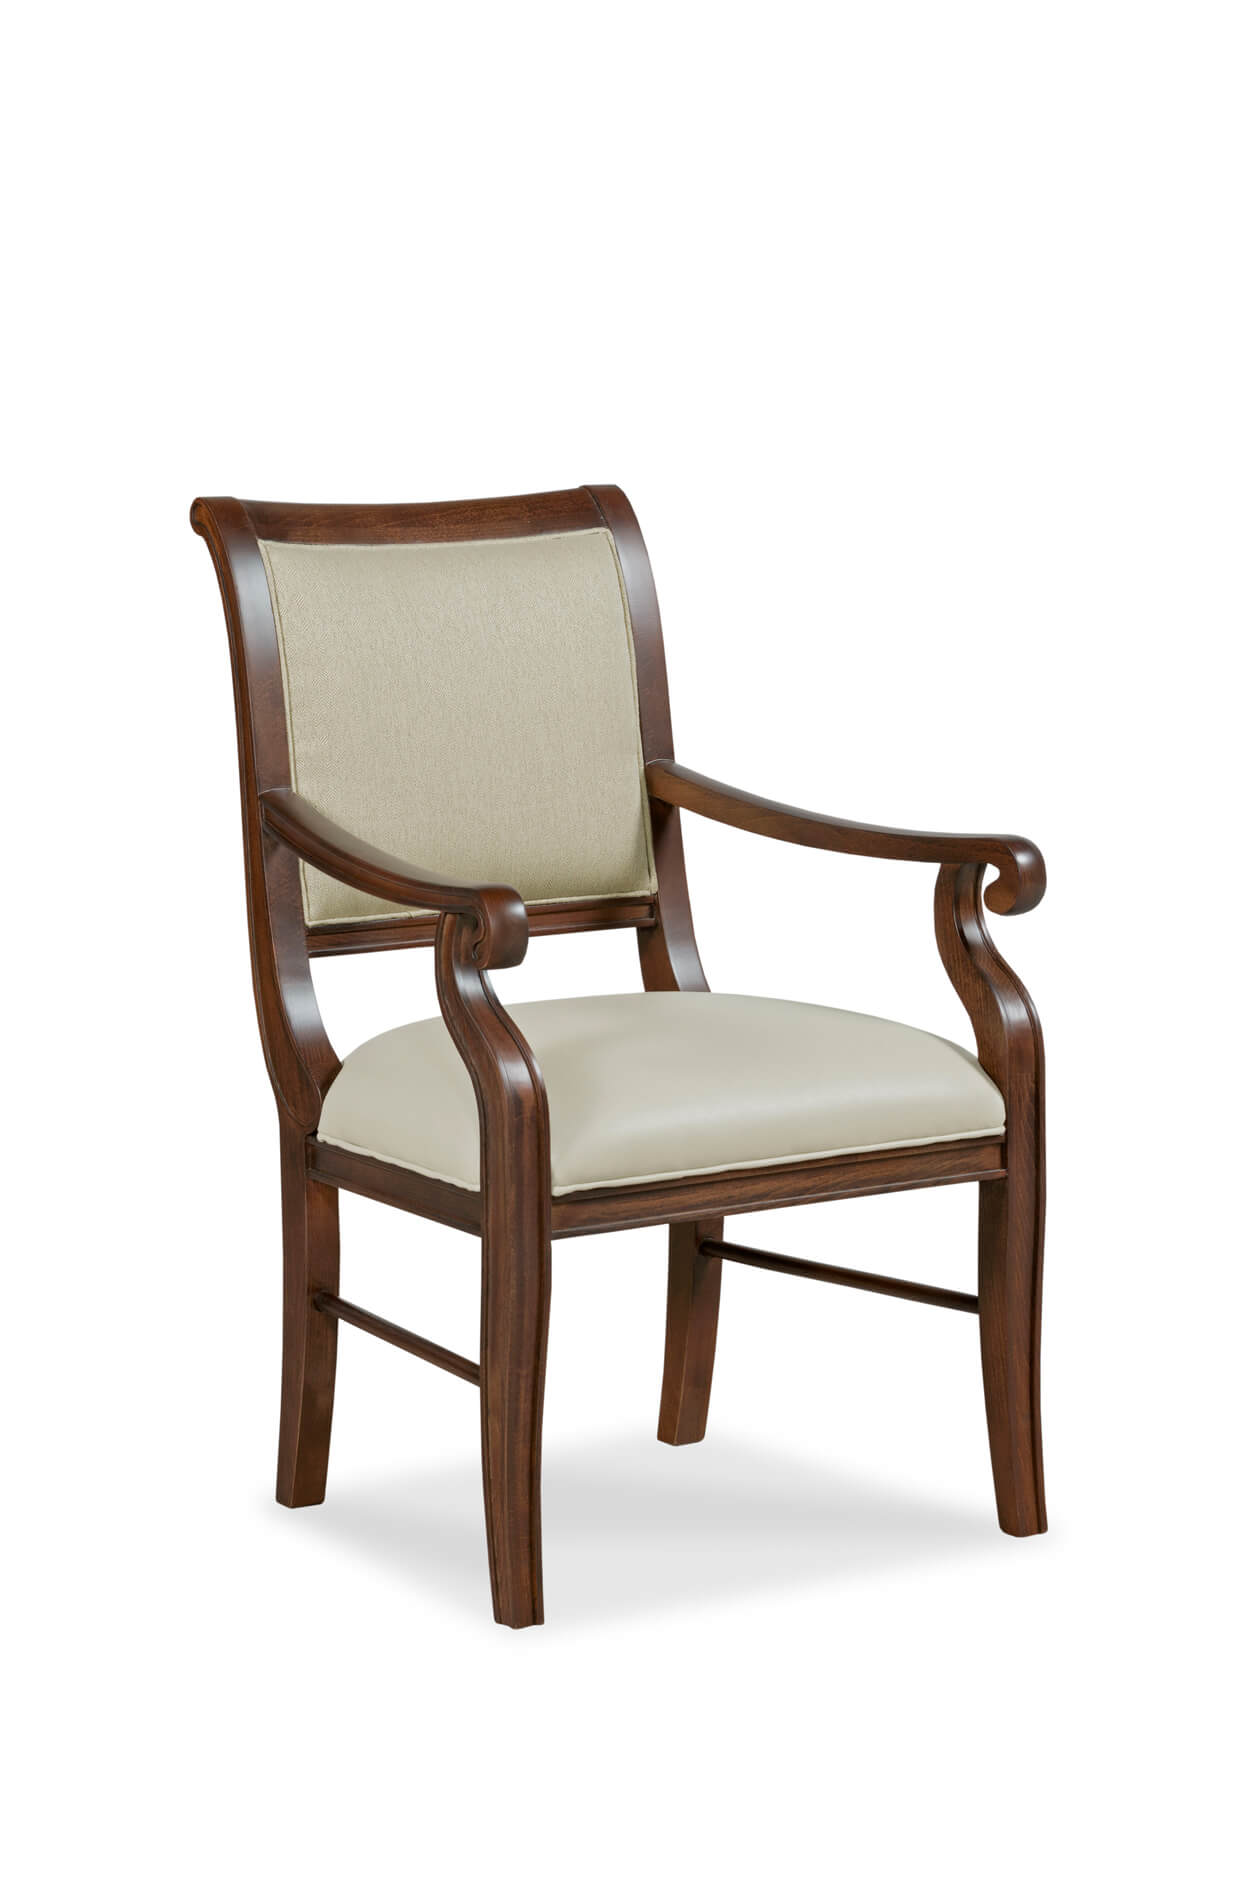 Fairfield's Emmett Upholstered Dining Arm Chair